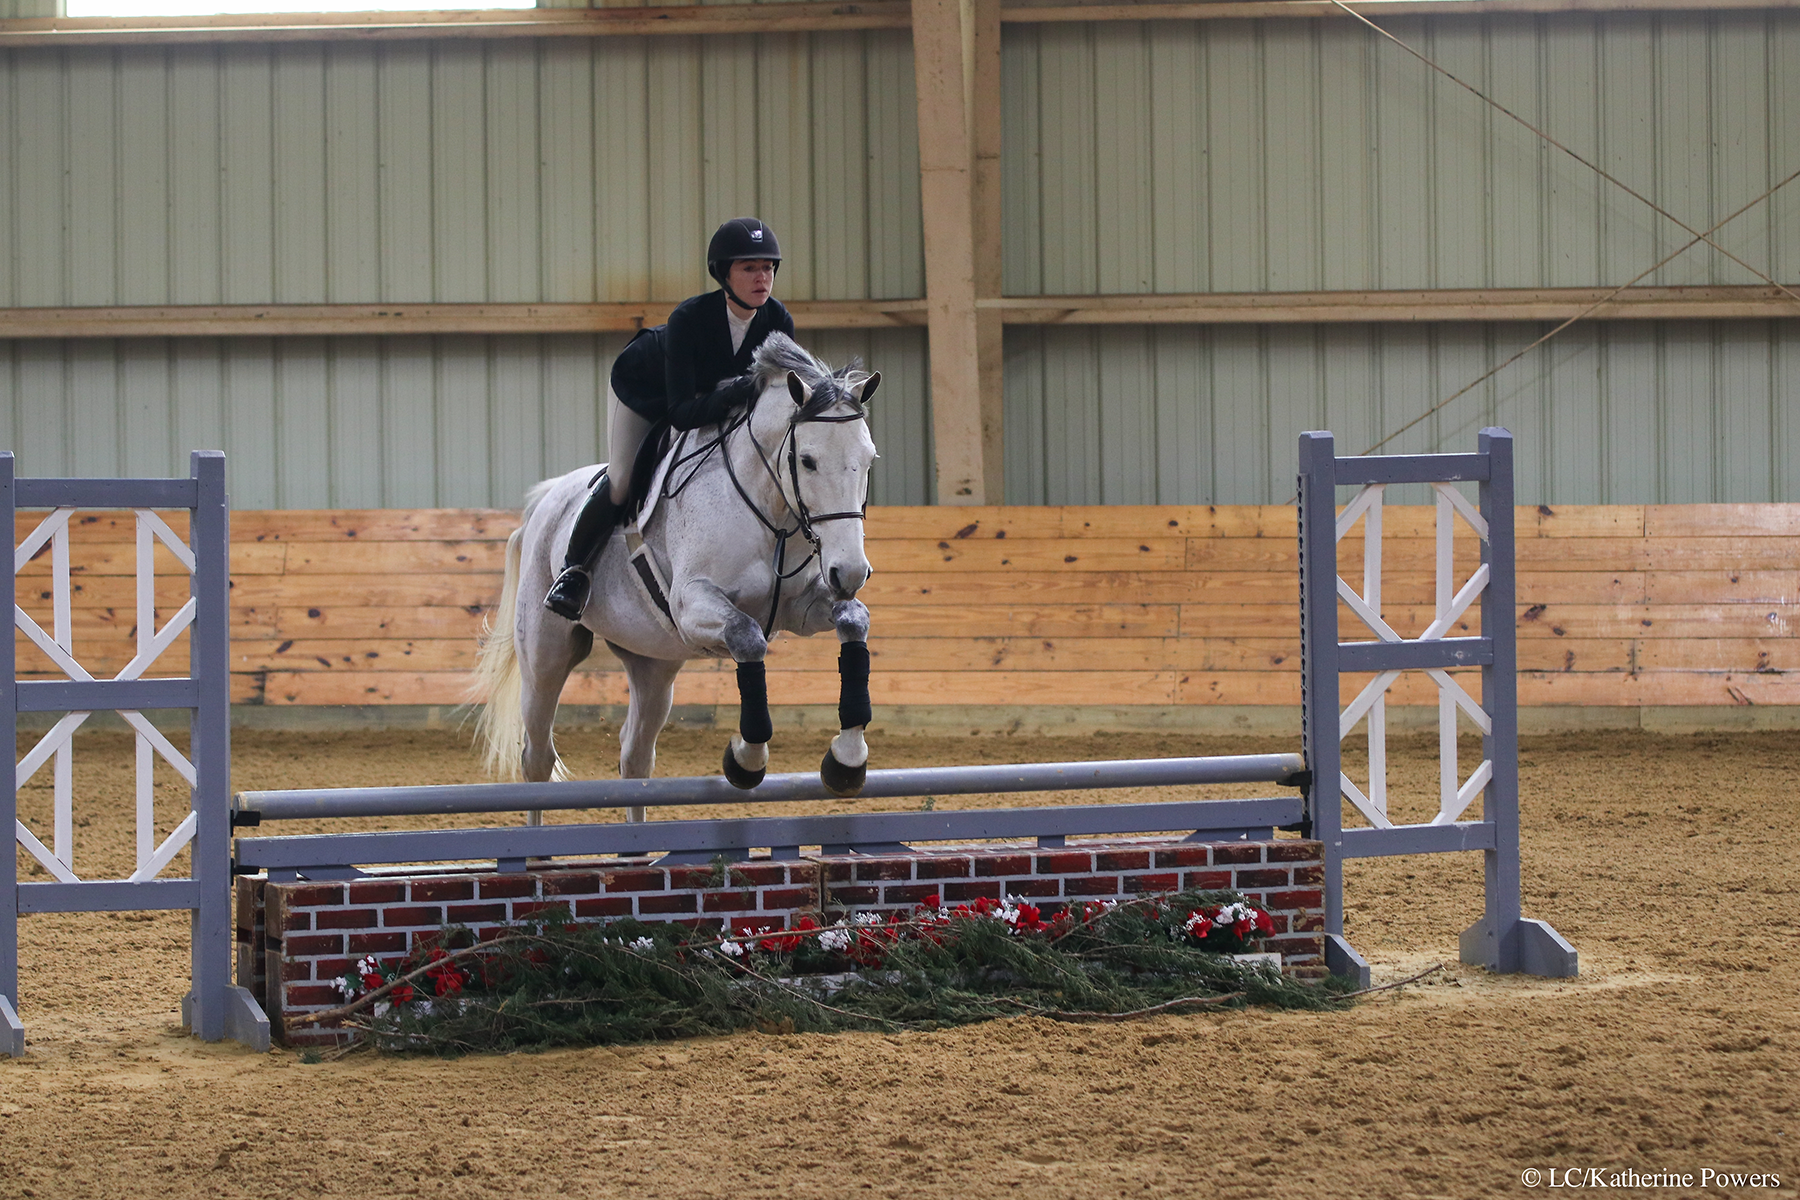 Christina Antonucci rides a horse in Open Fences.